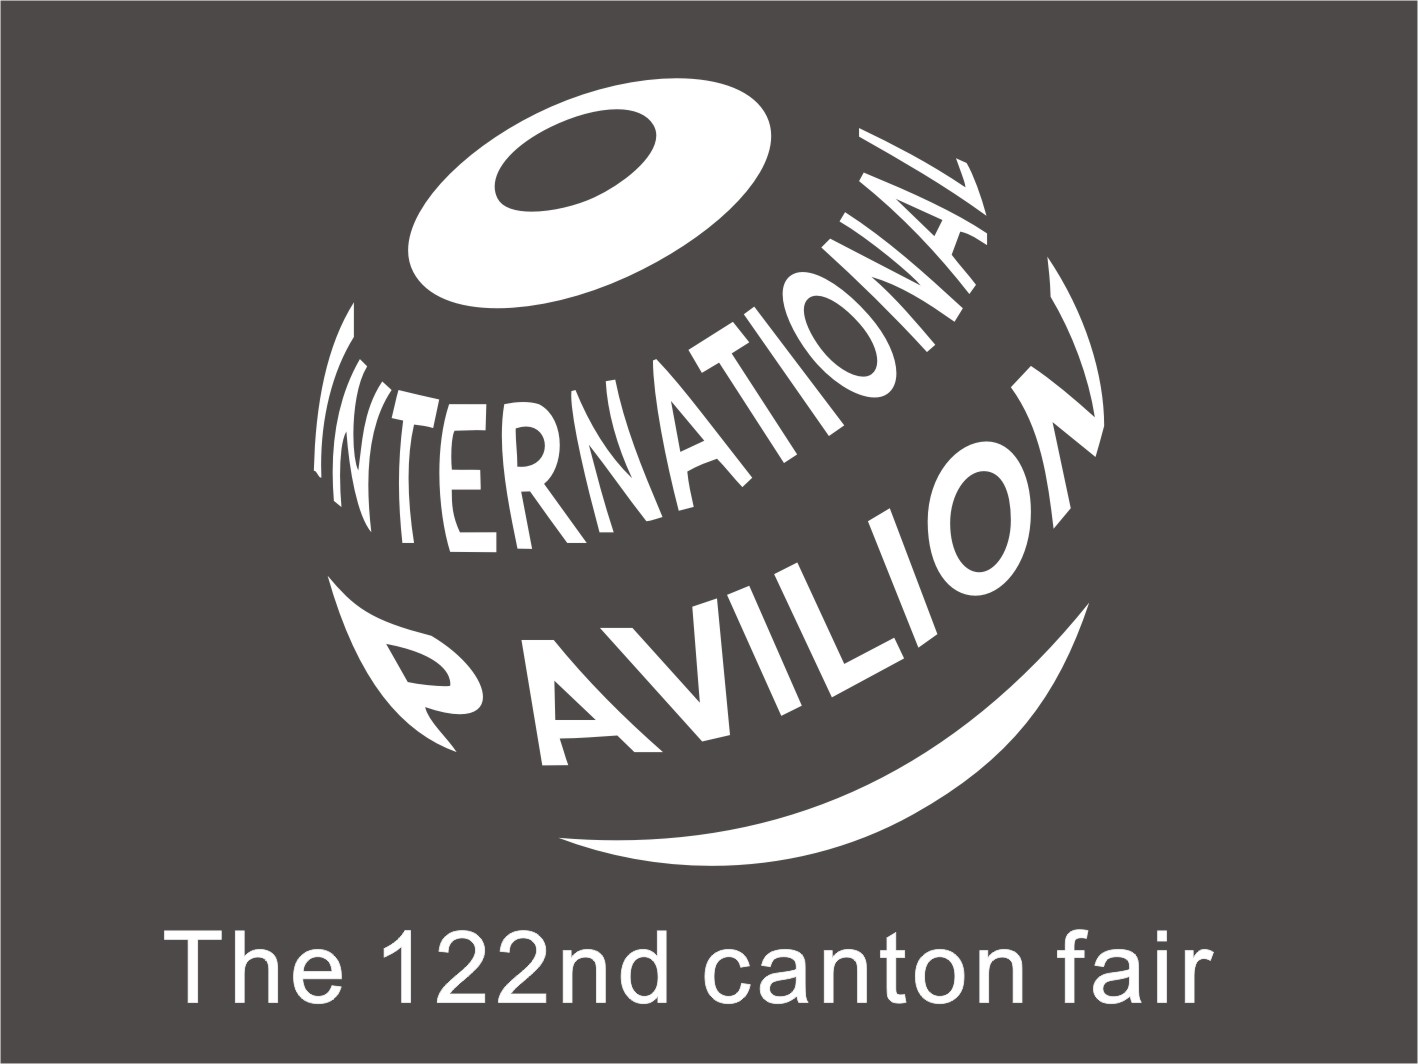 The 122nd canton fair will be held in Guangzhou China